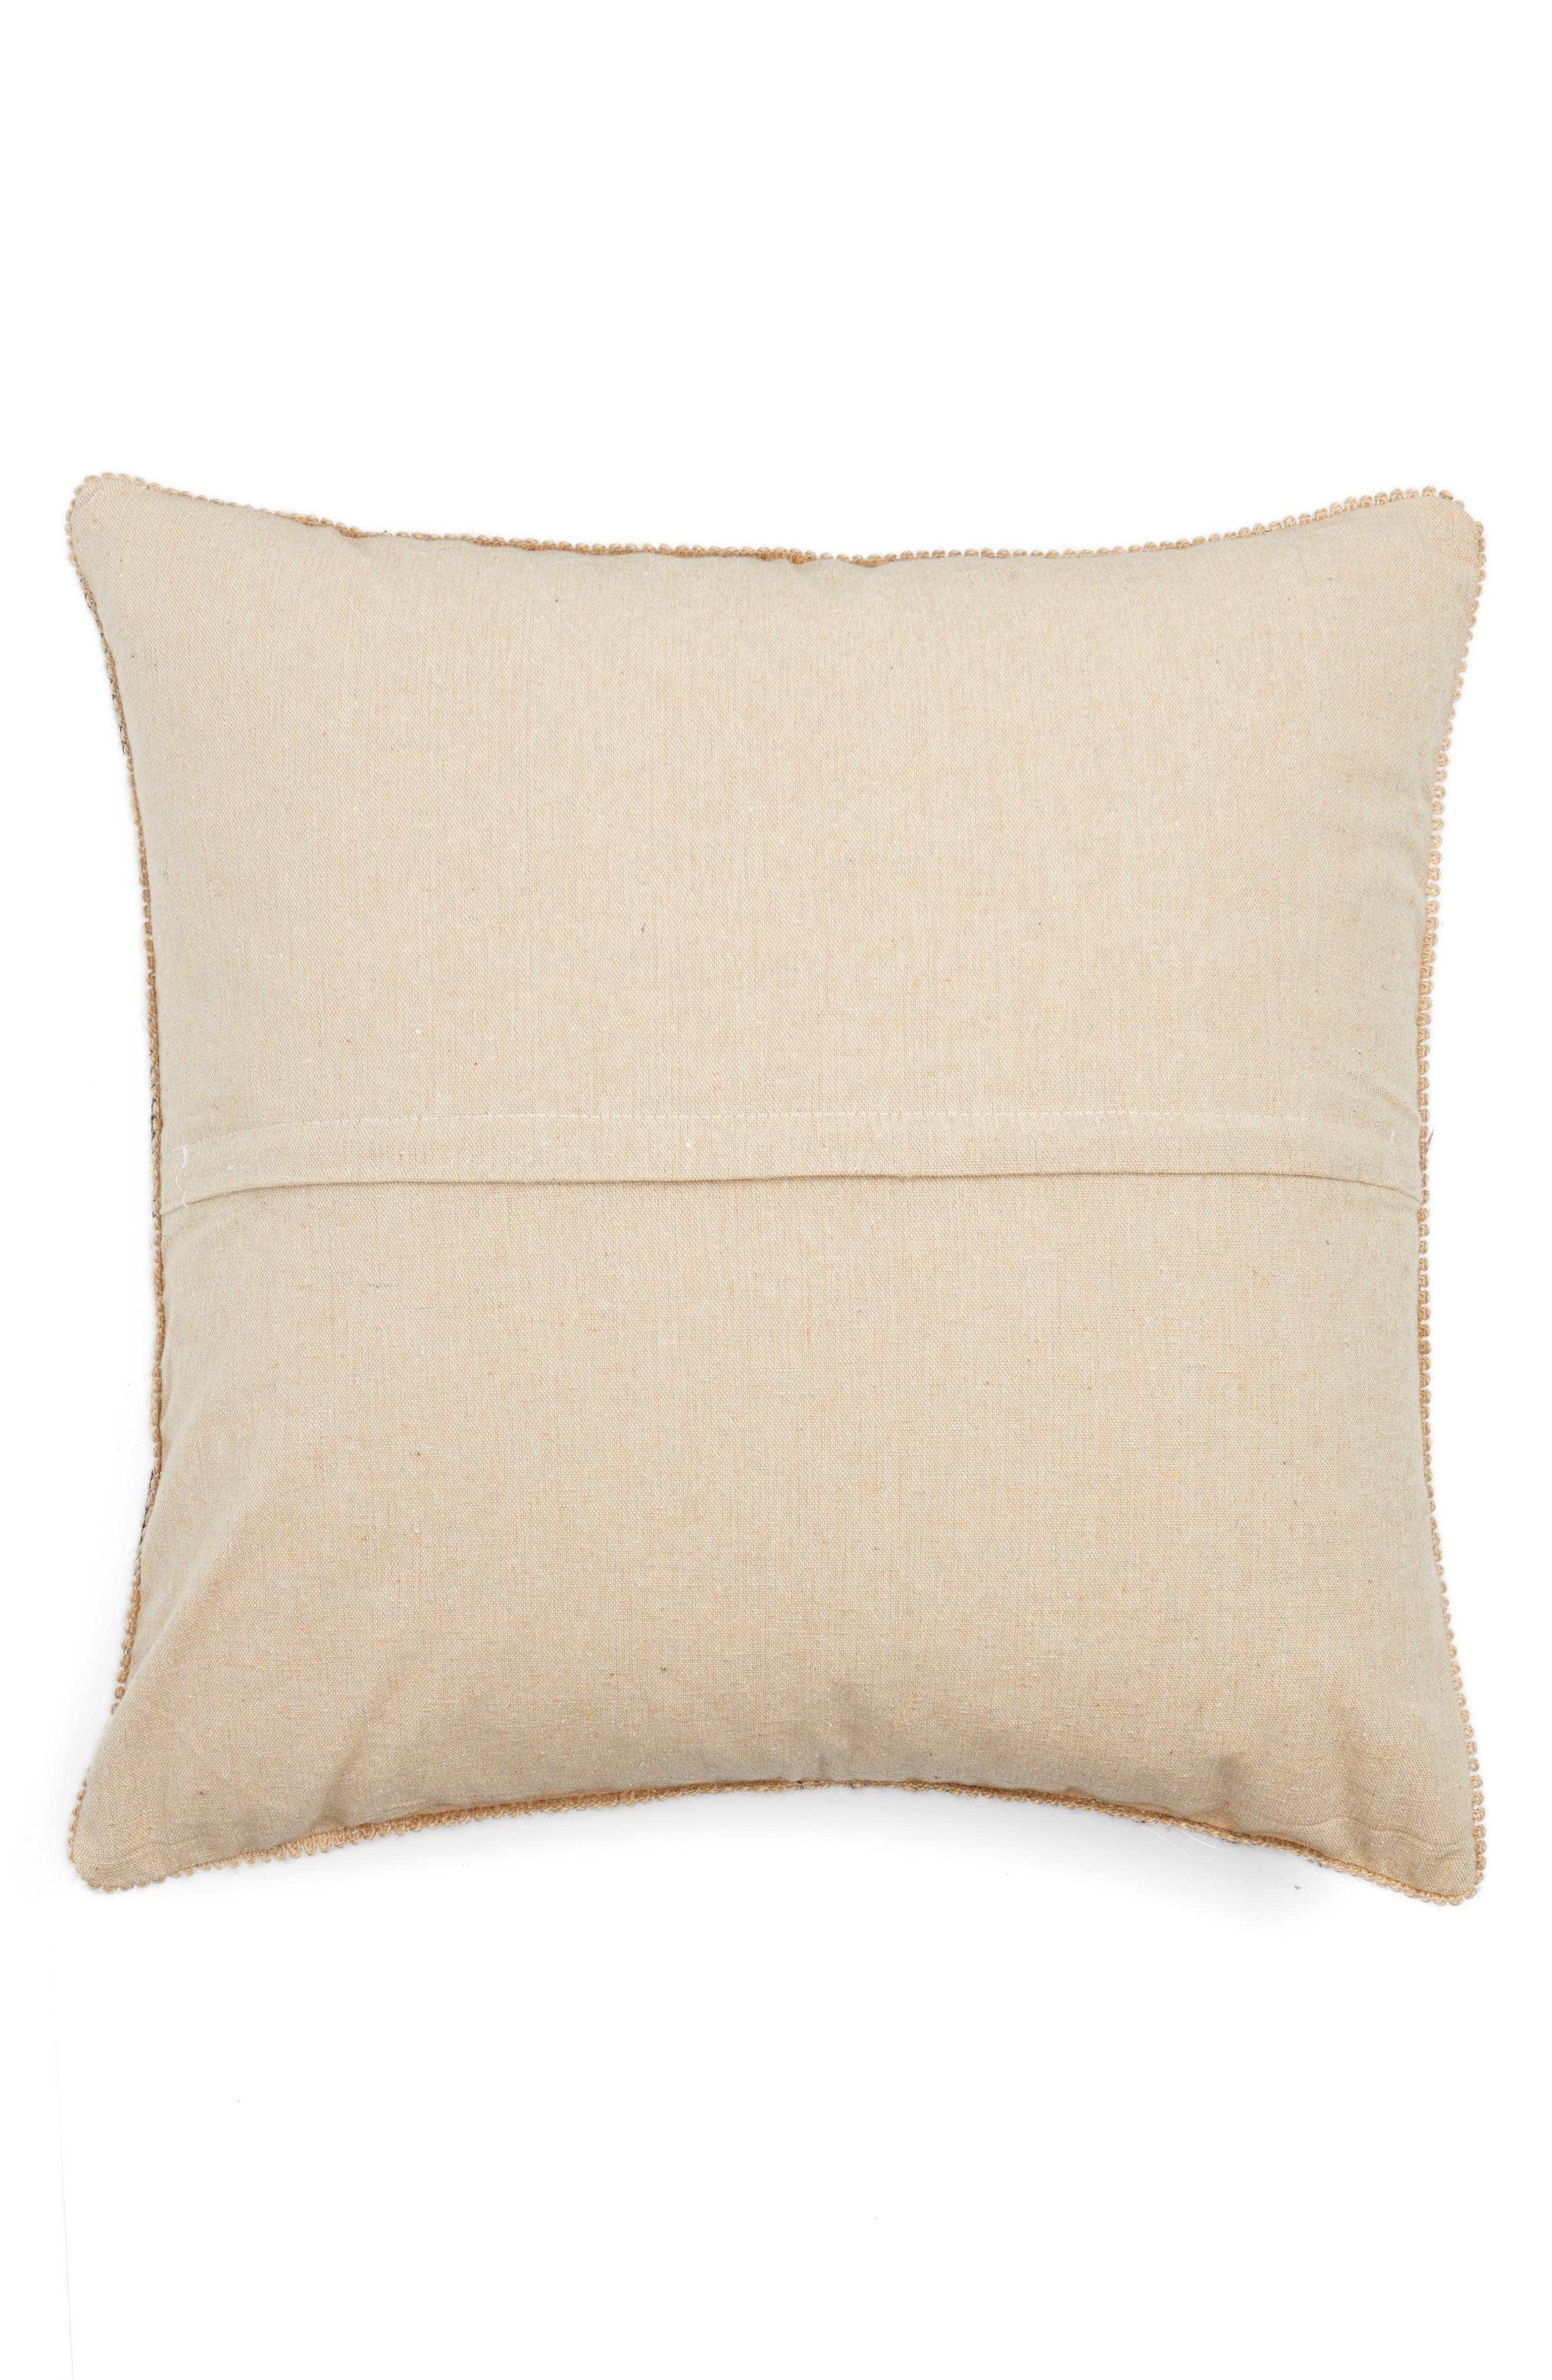 Zander Embroidered Pillow,                             Alternate thumbnail 2, color,                             500